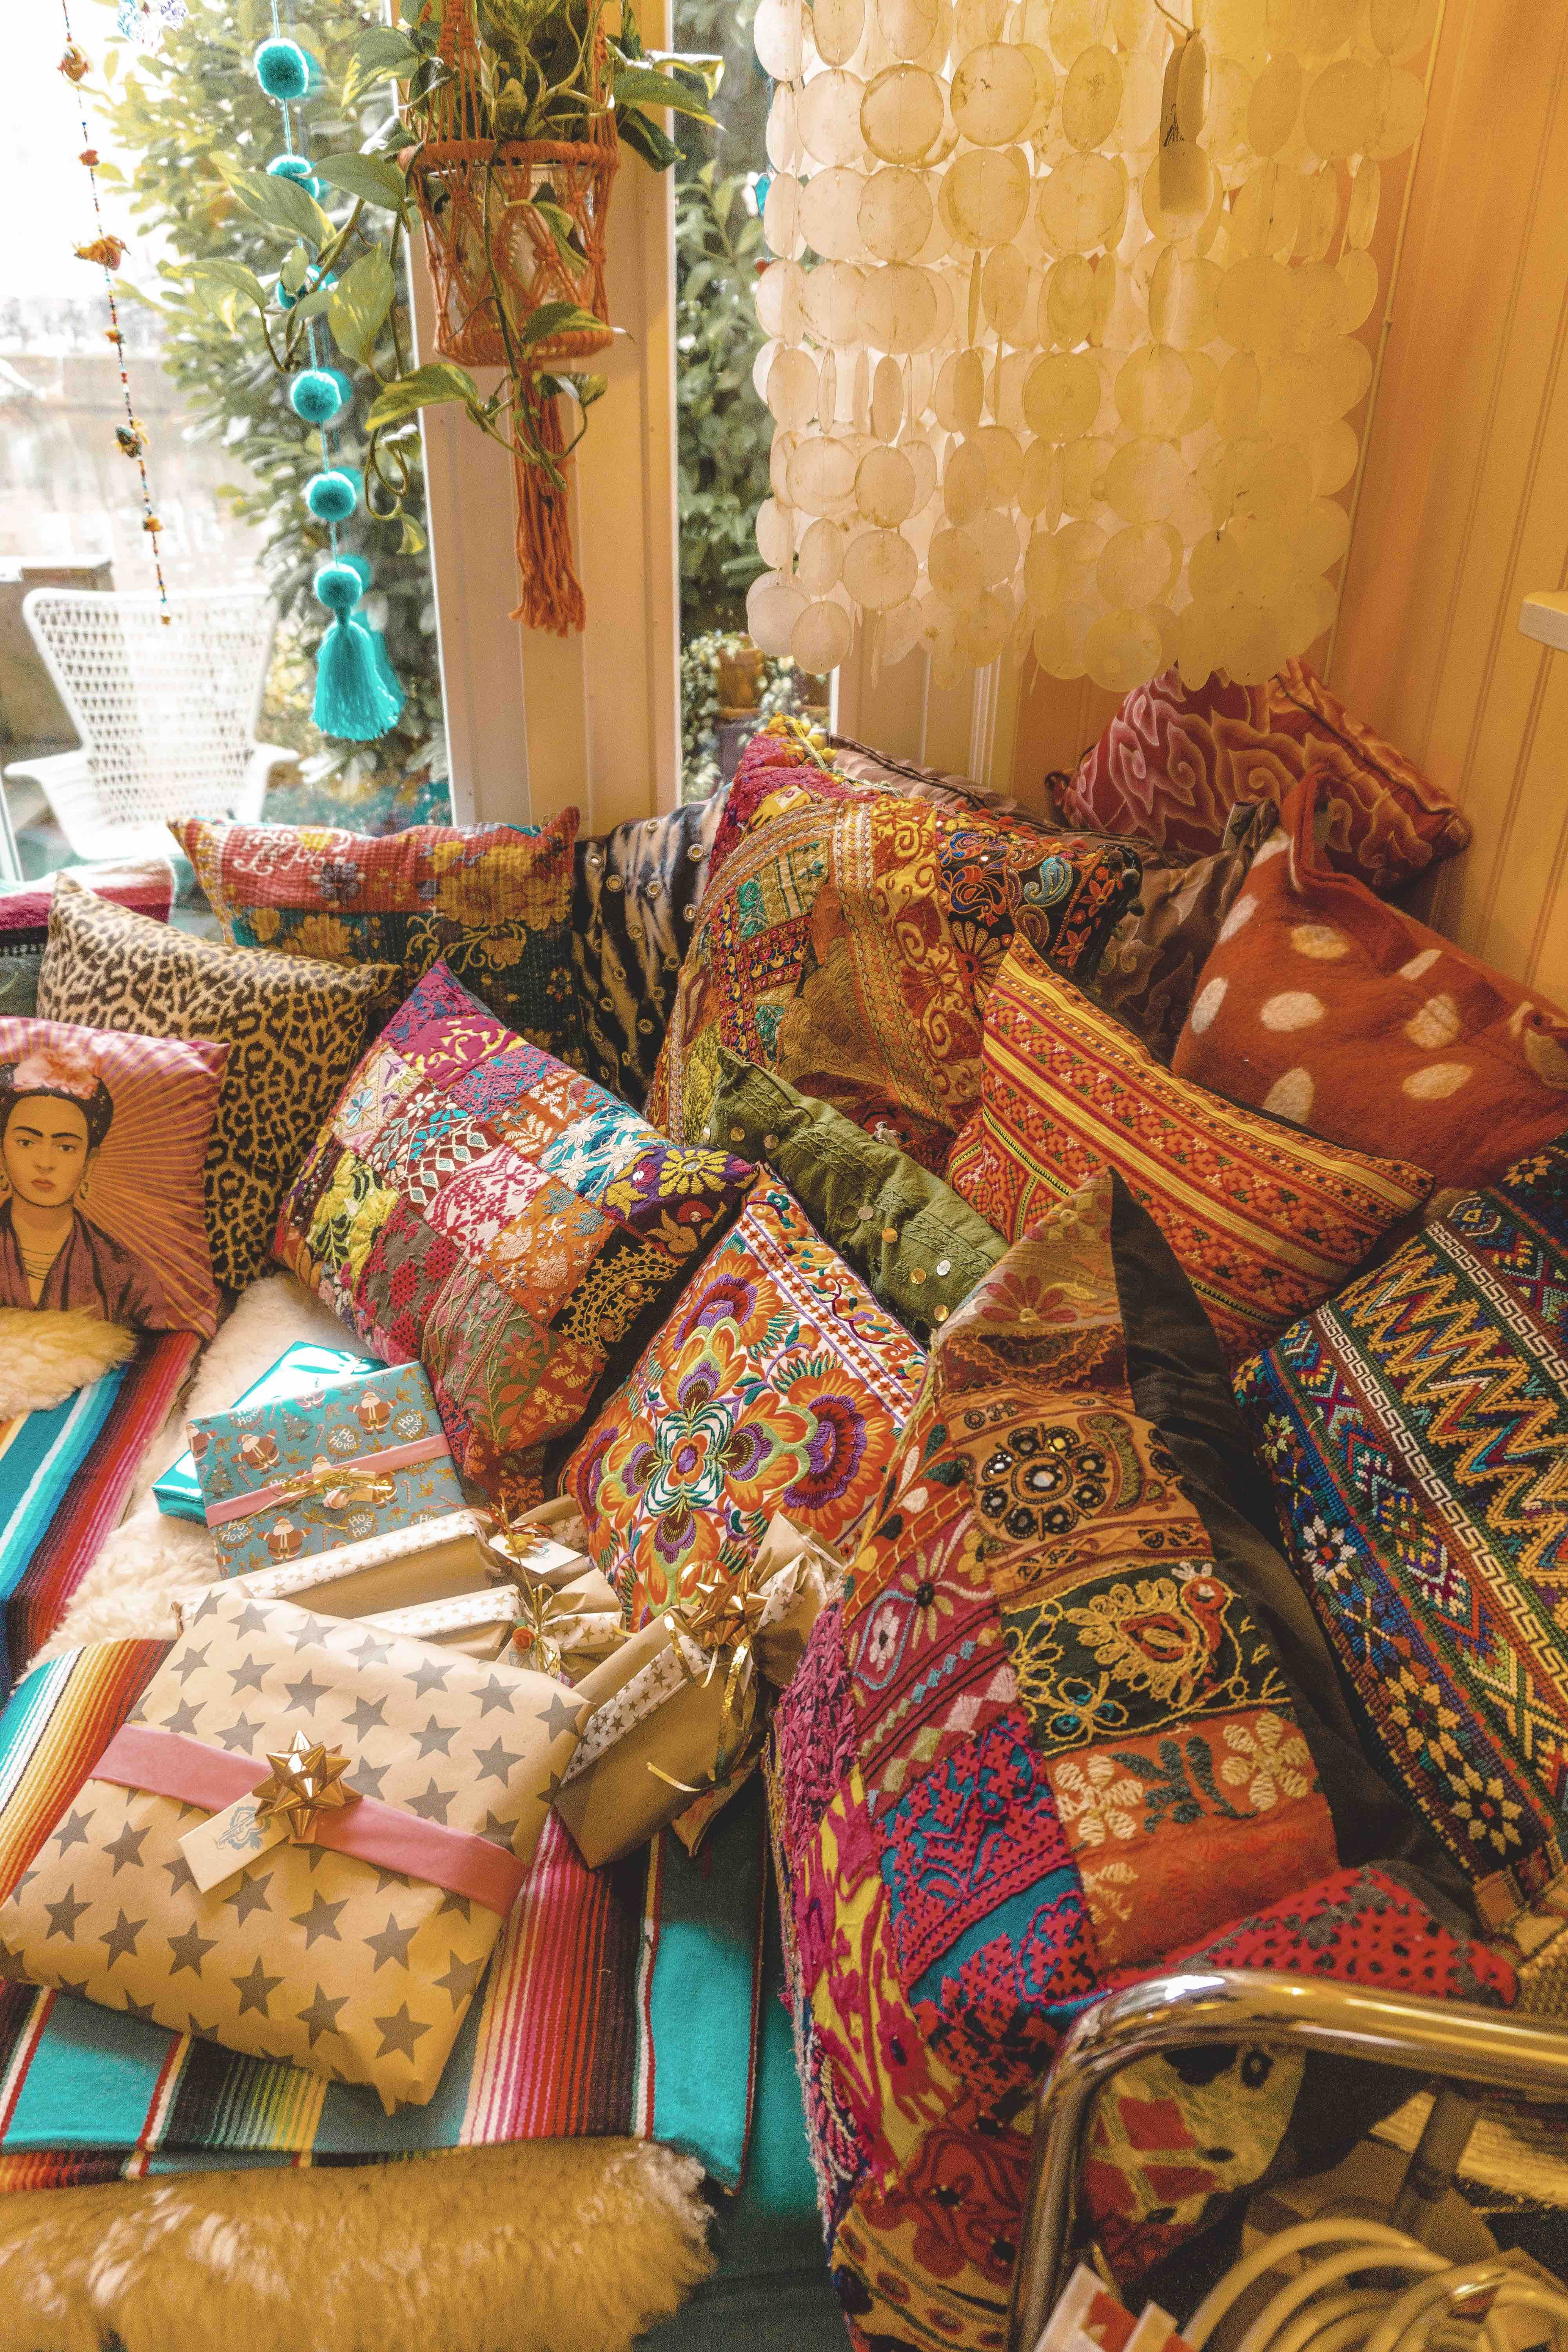 Bohemian Home Decor Shop For The Gypsy In Us All Bohemian Decor Bohemian Interior Bohemian